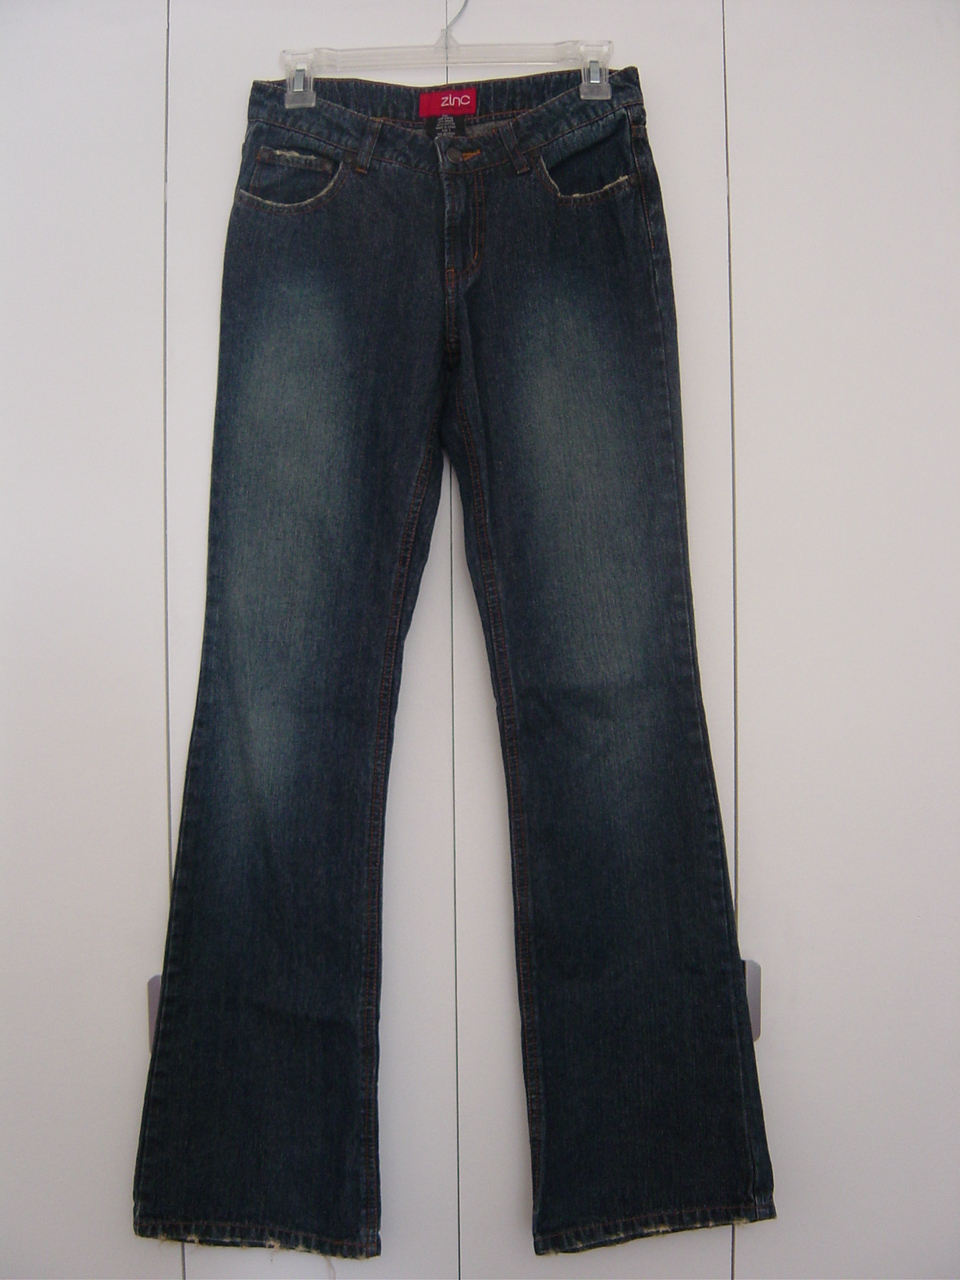 Primary image for Zinc Jeans (Size 1) NWOT